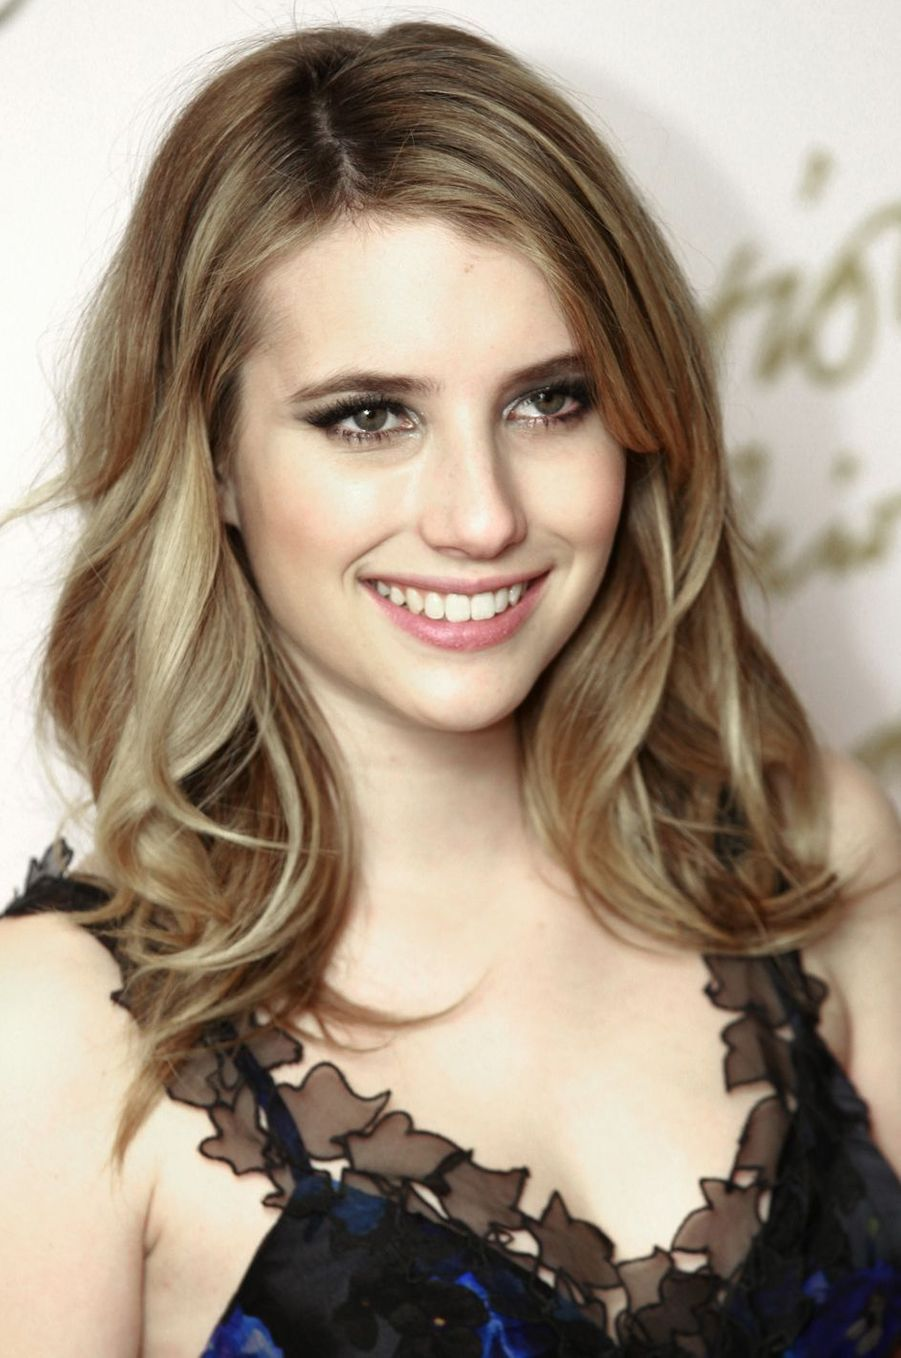 Emma Roberts aux British Fashion Awards à Londres en décembre 2010